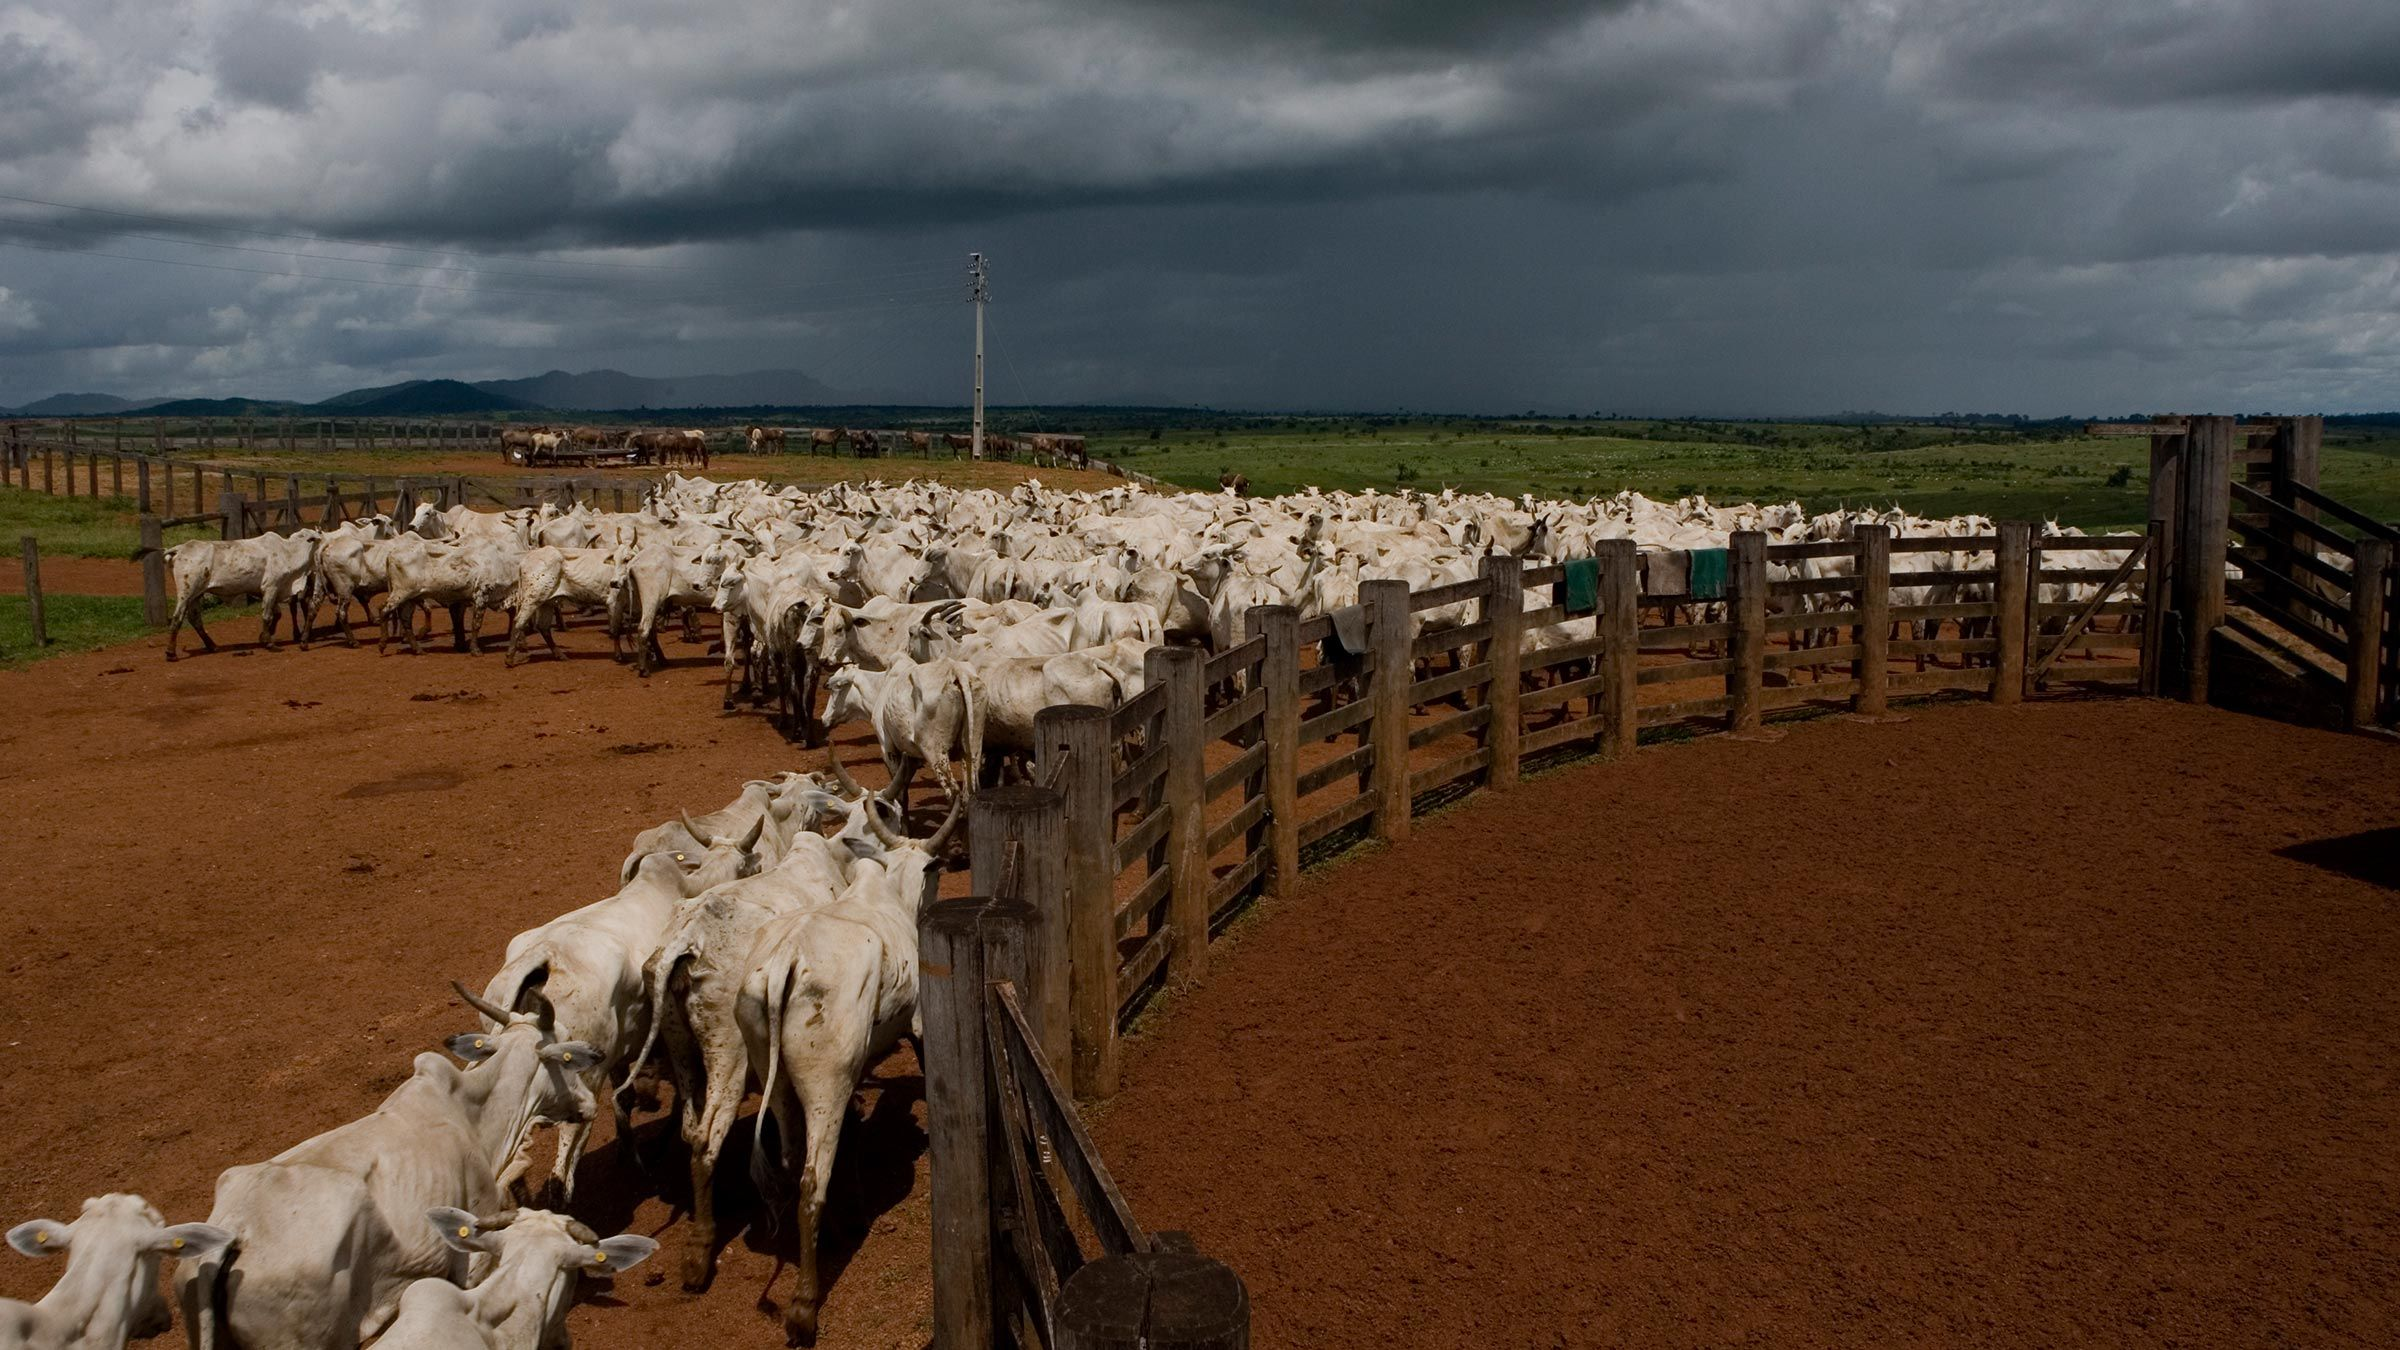 Cattle in the Amazon